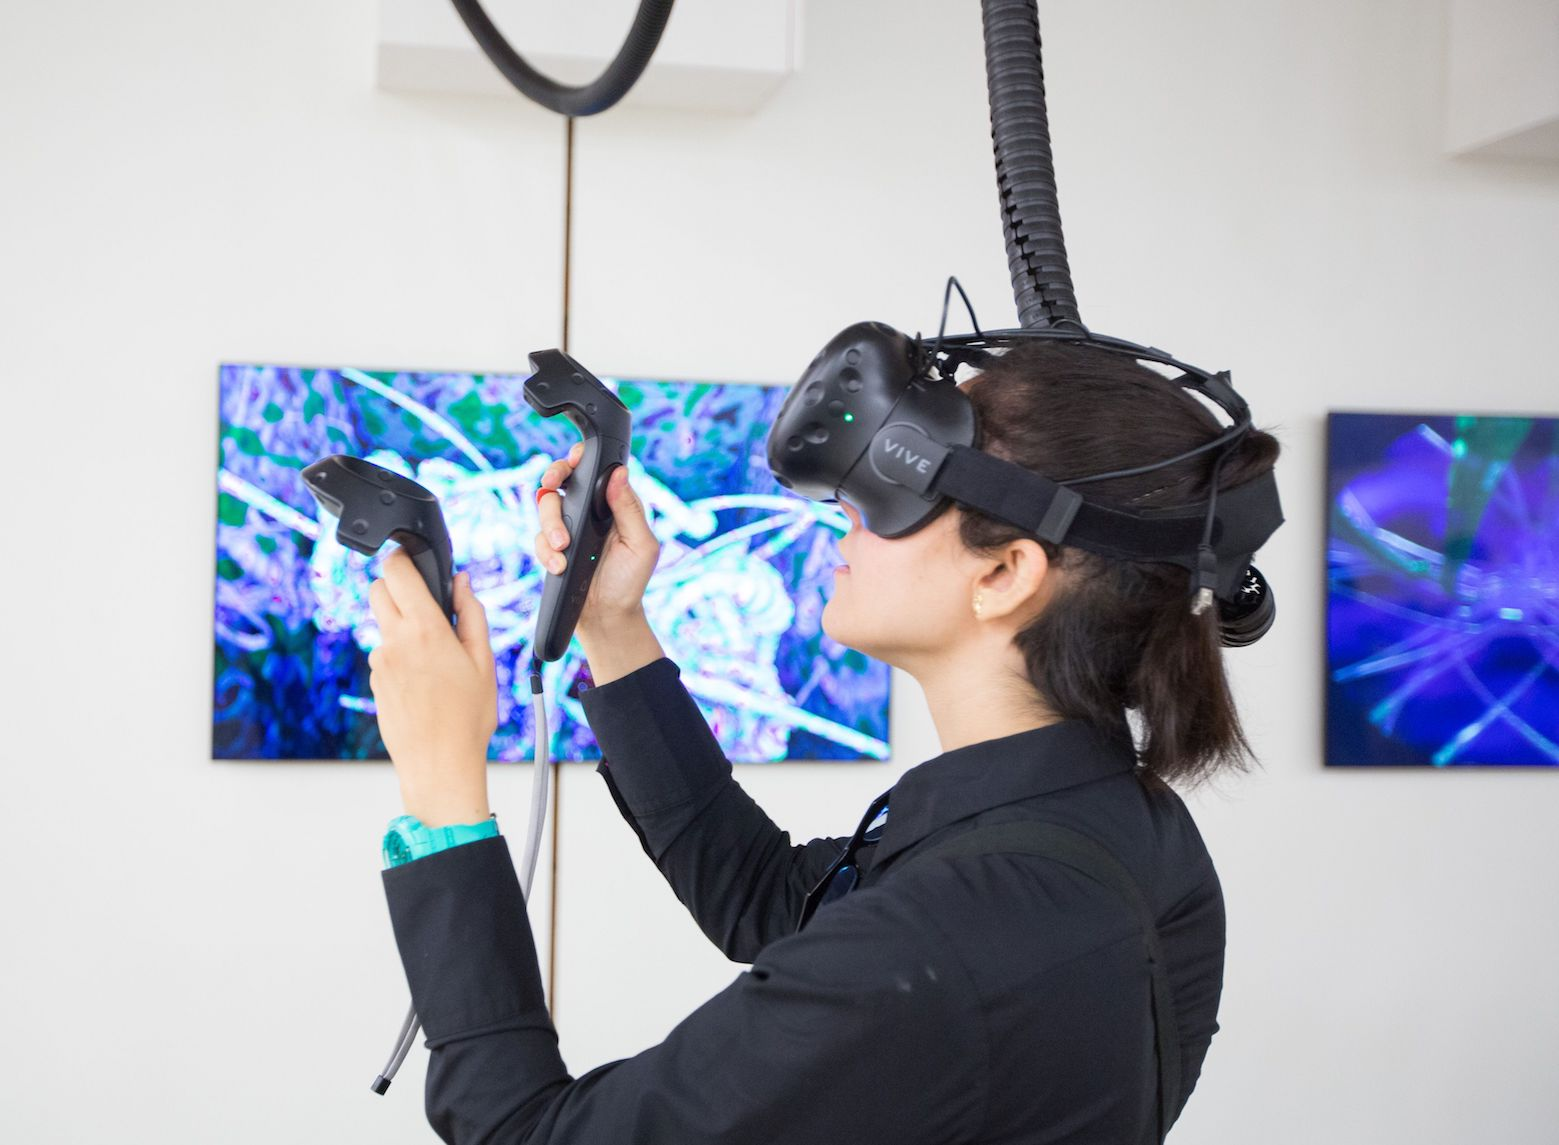 William Latham and Team, Mutator VR Mutation Space, VR Art Experience, Installation at Ars Electronica. 2017 © Ars Electronica.